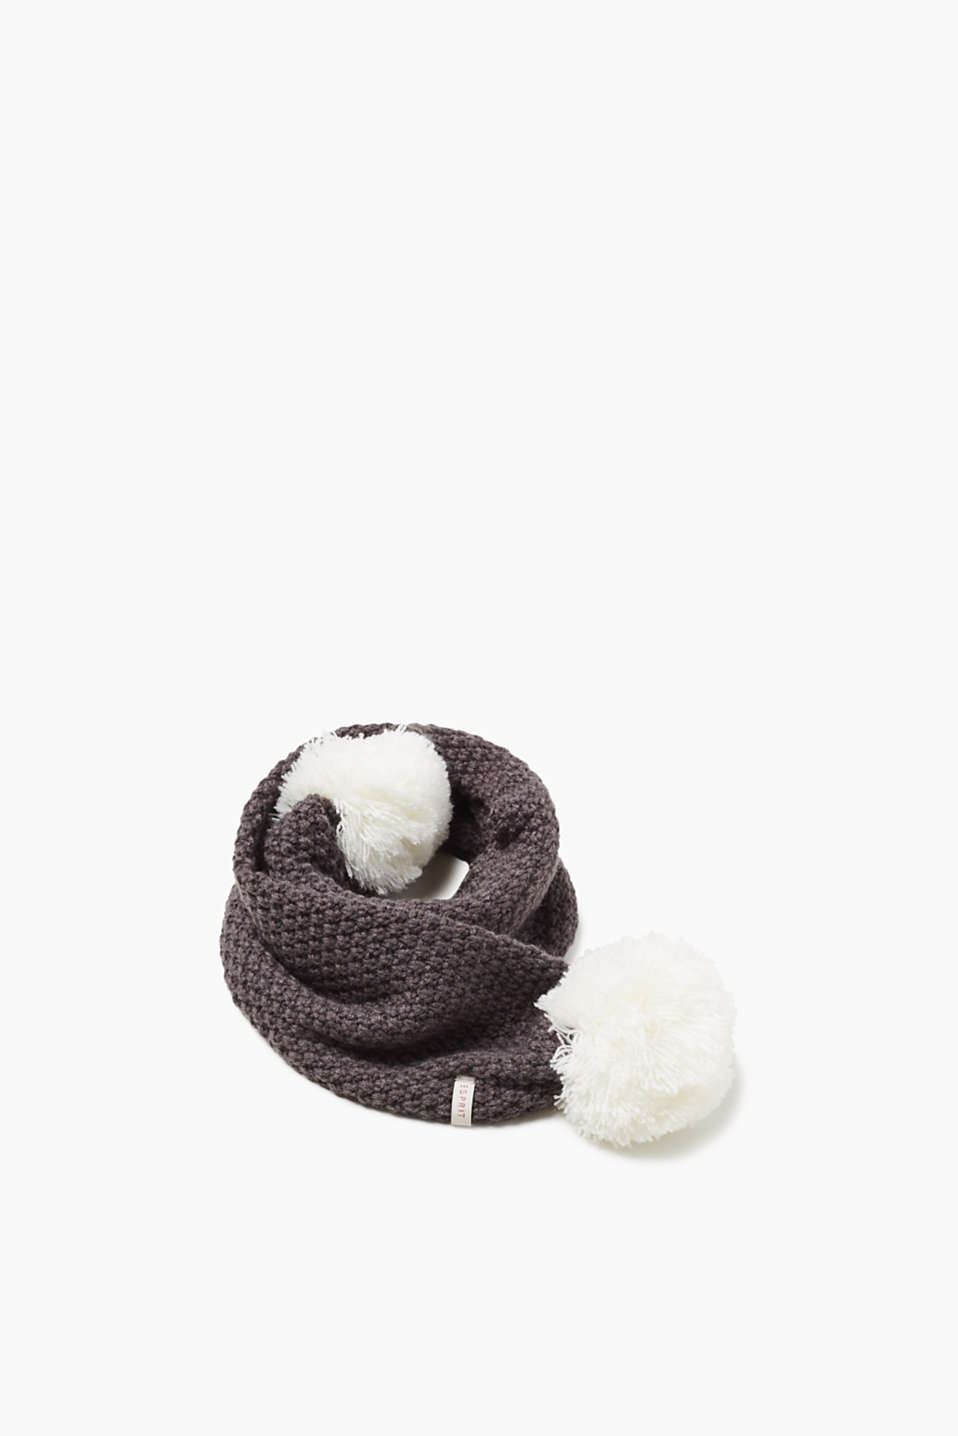 Unbelievably unique! The eye-catching pompoms on both ends make this knit scarf a sensationally sweet accessory!